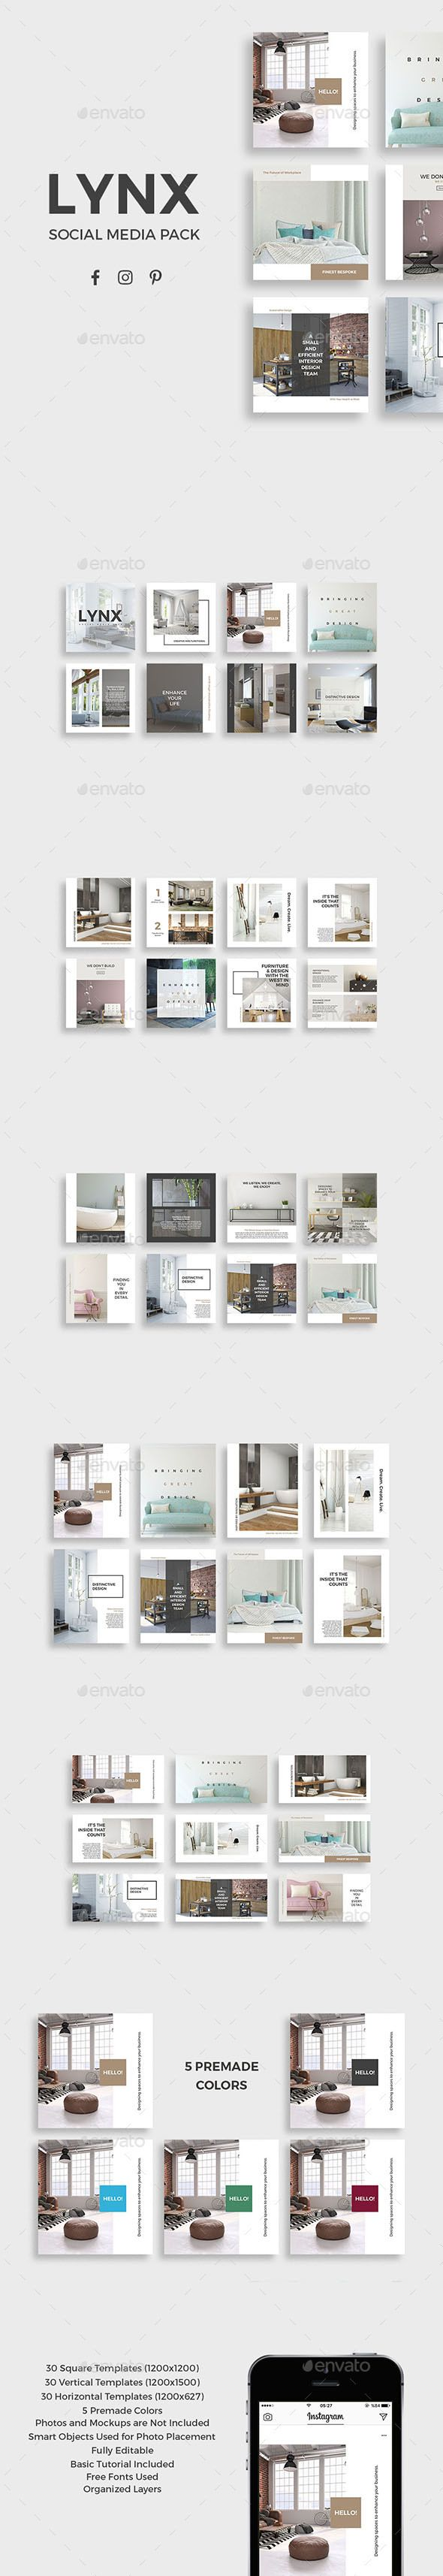 Home products company decorating ideas news amp media download contact - Lynx Social Media Pack